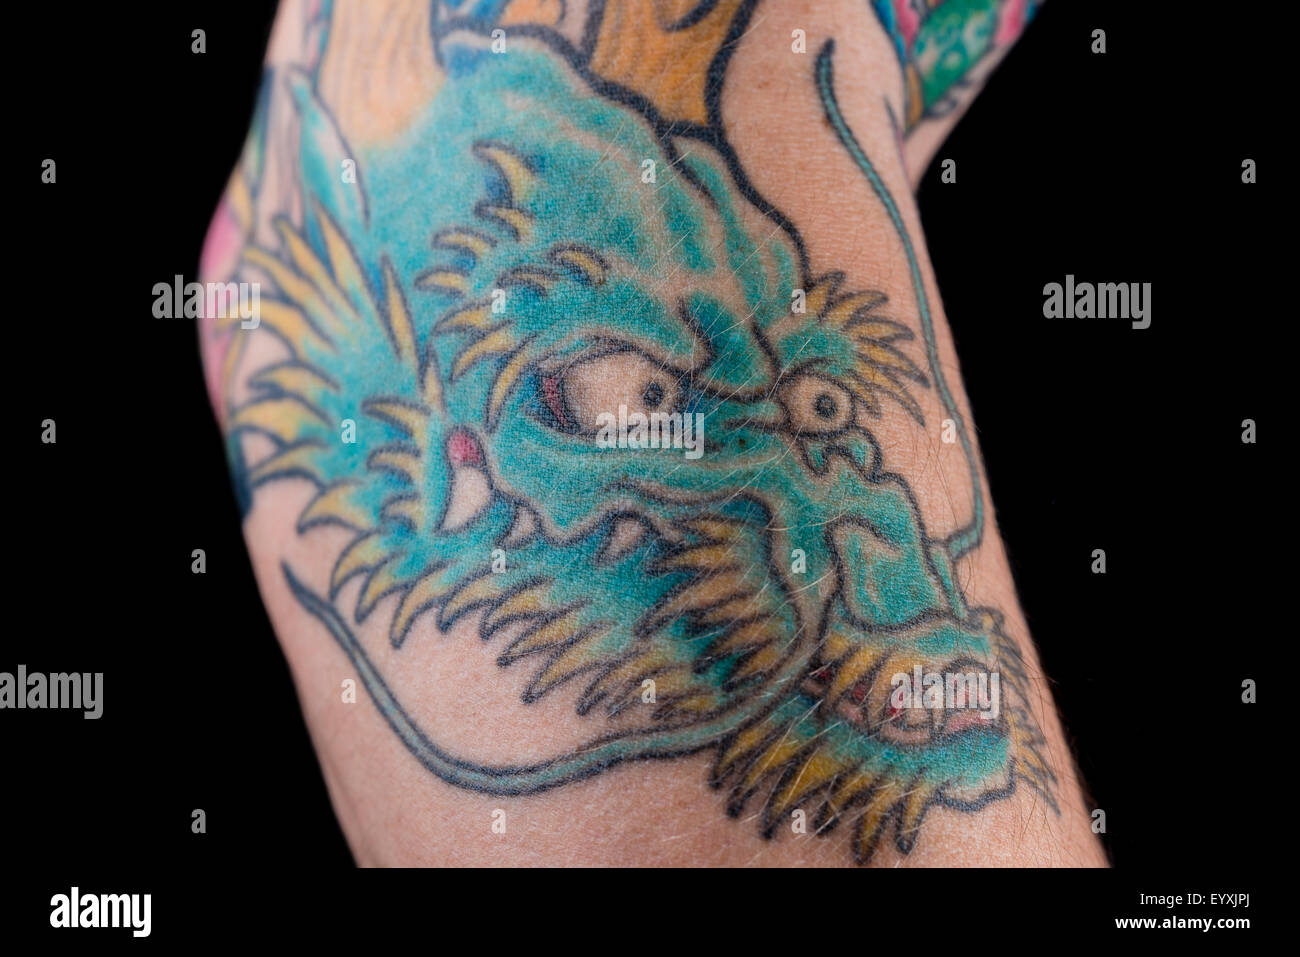 tattoo dragons photos tattoo dragons images alamy. Black Bedroom Furniture Sets. Home Design Ideas